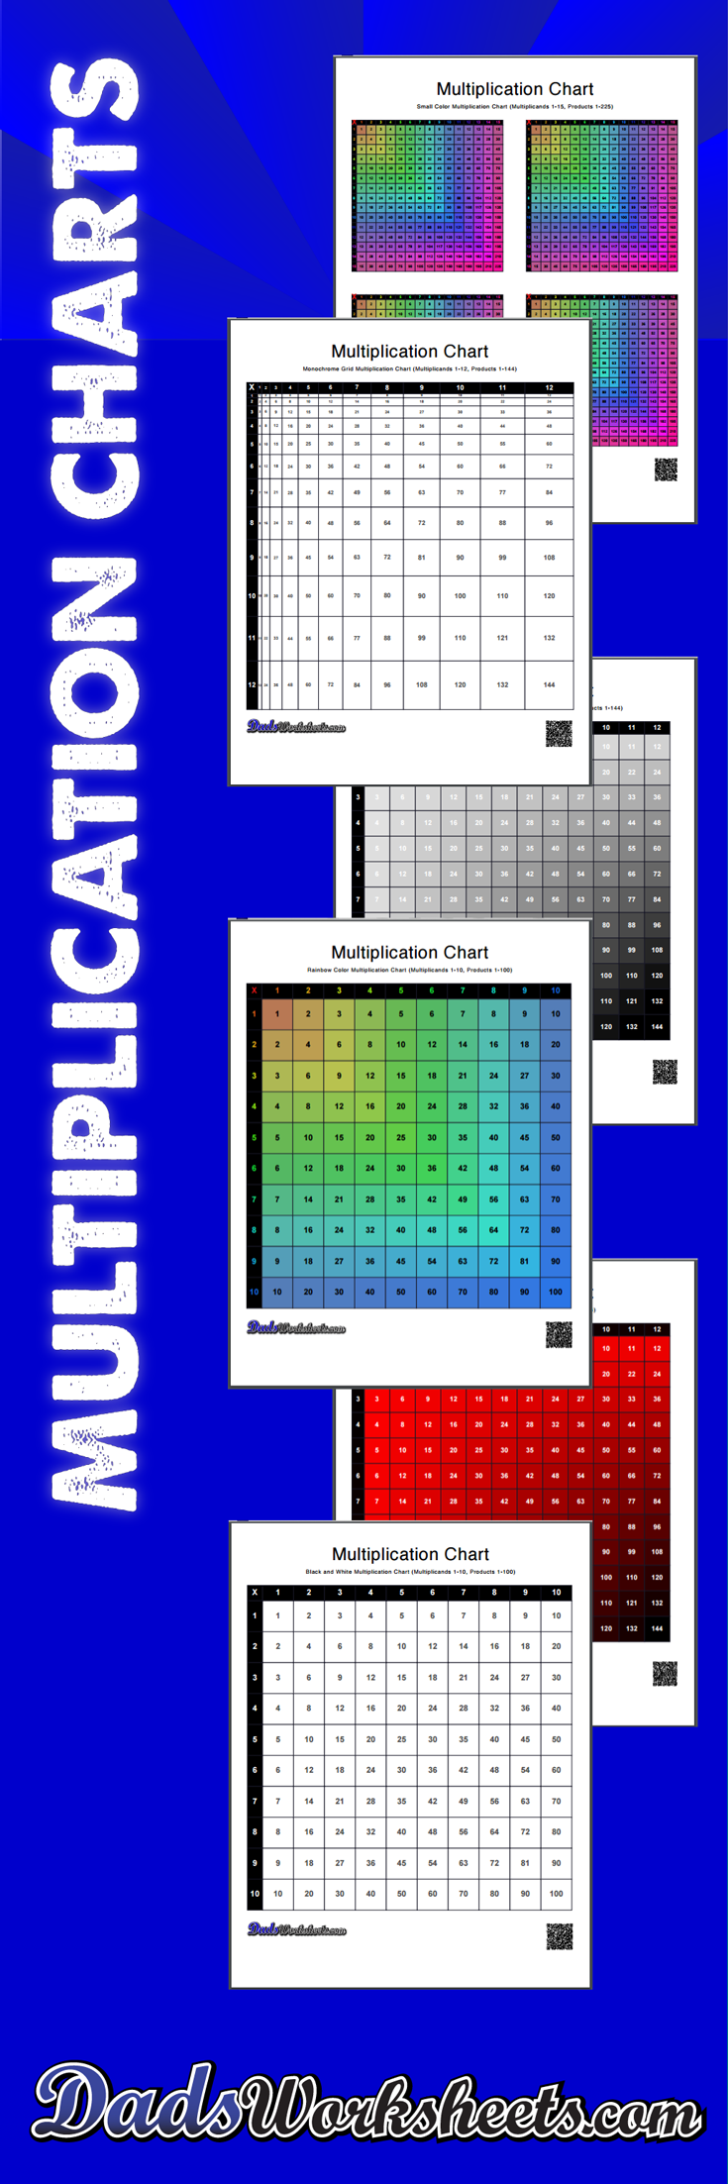 Multiplication Chart All The Way To 15